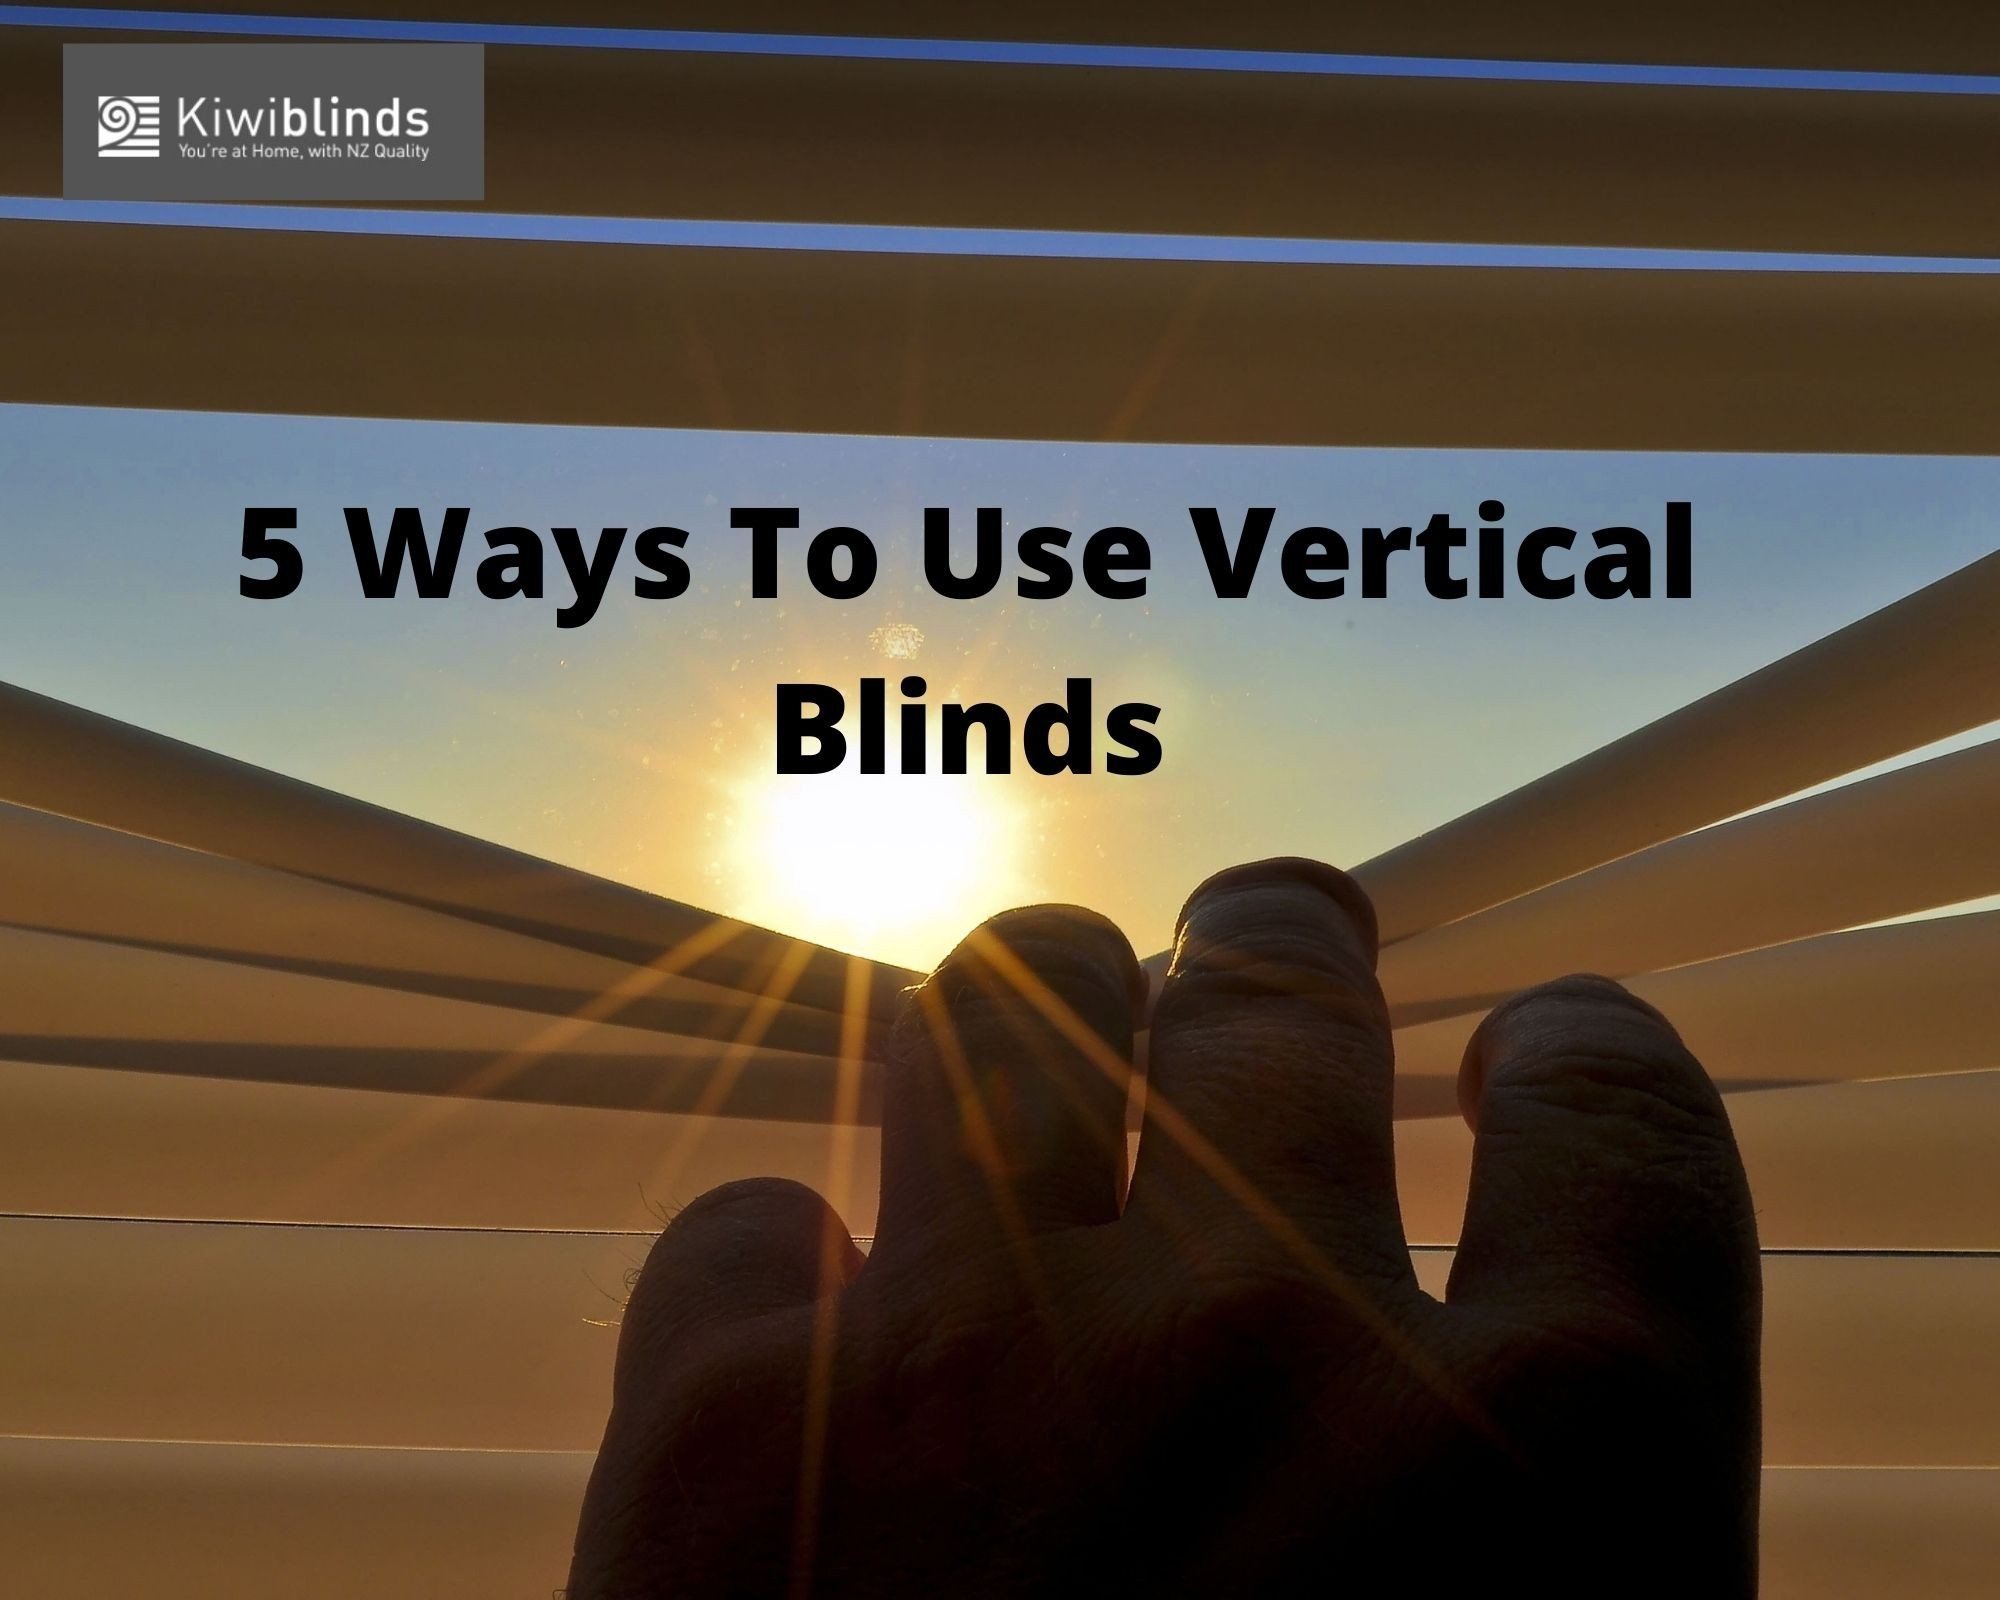 5 Ways To Use Vertical Blinds